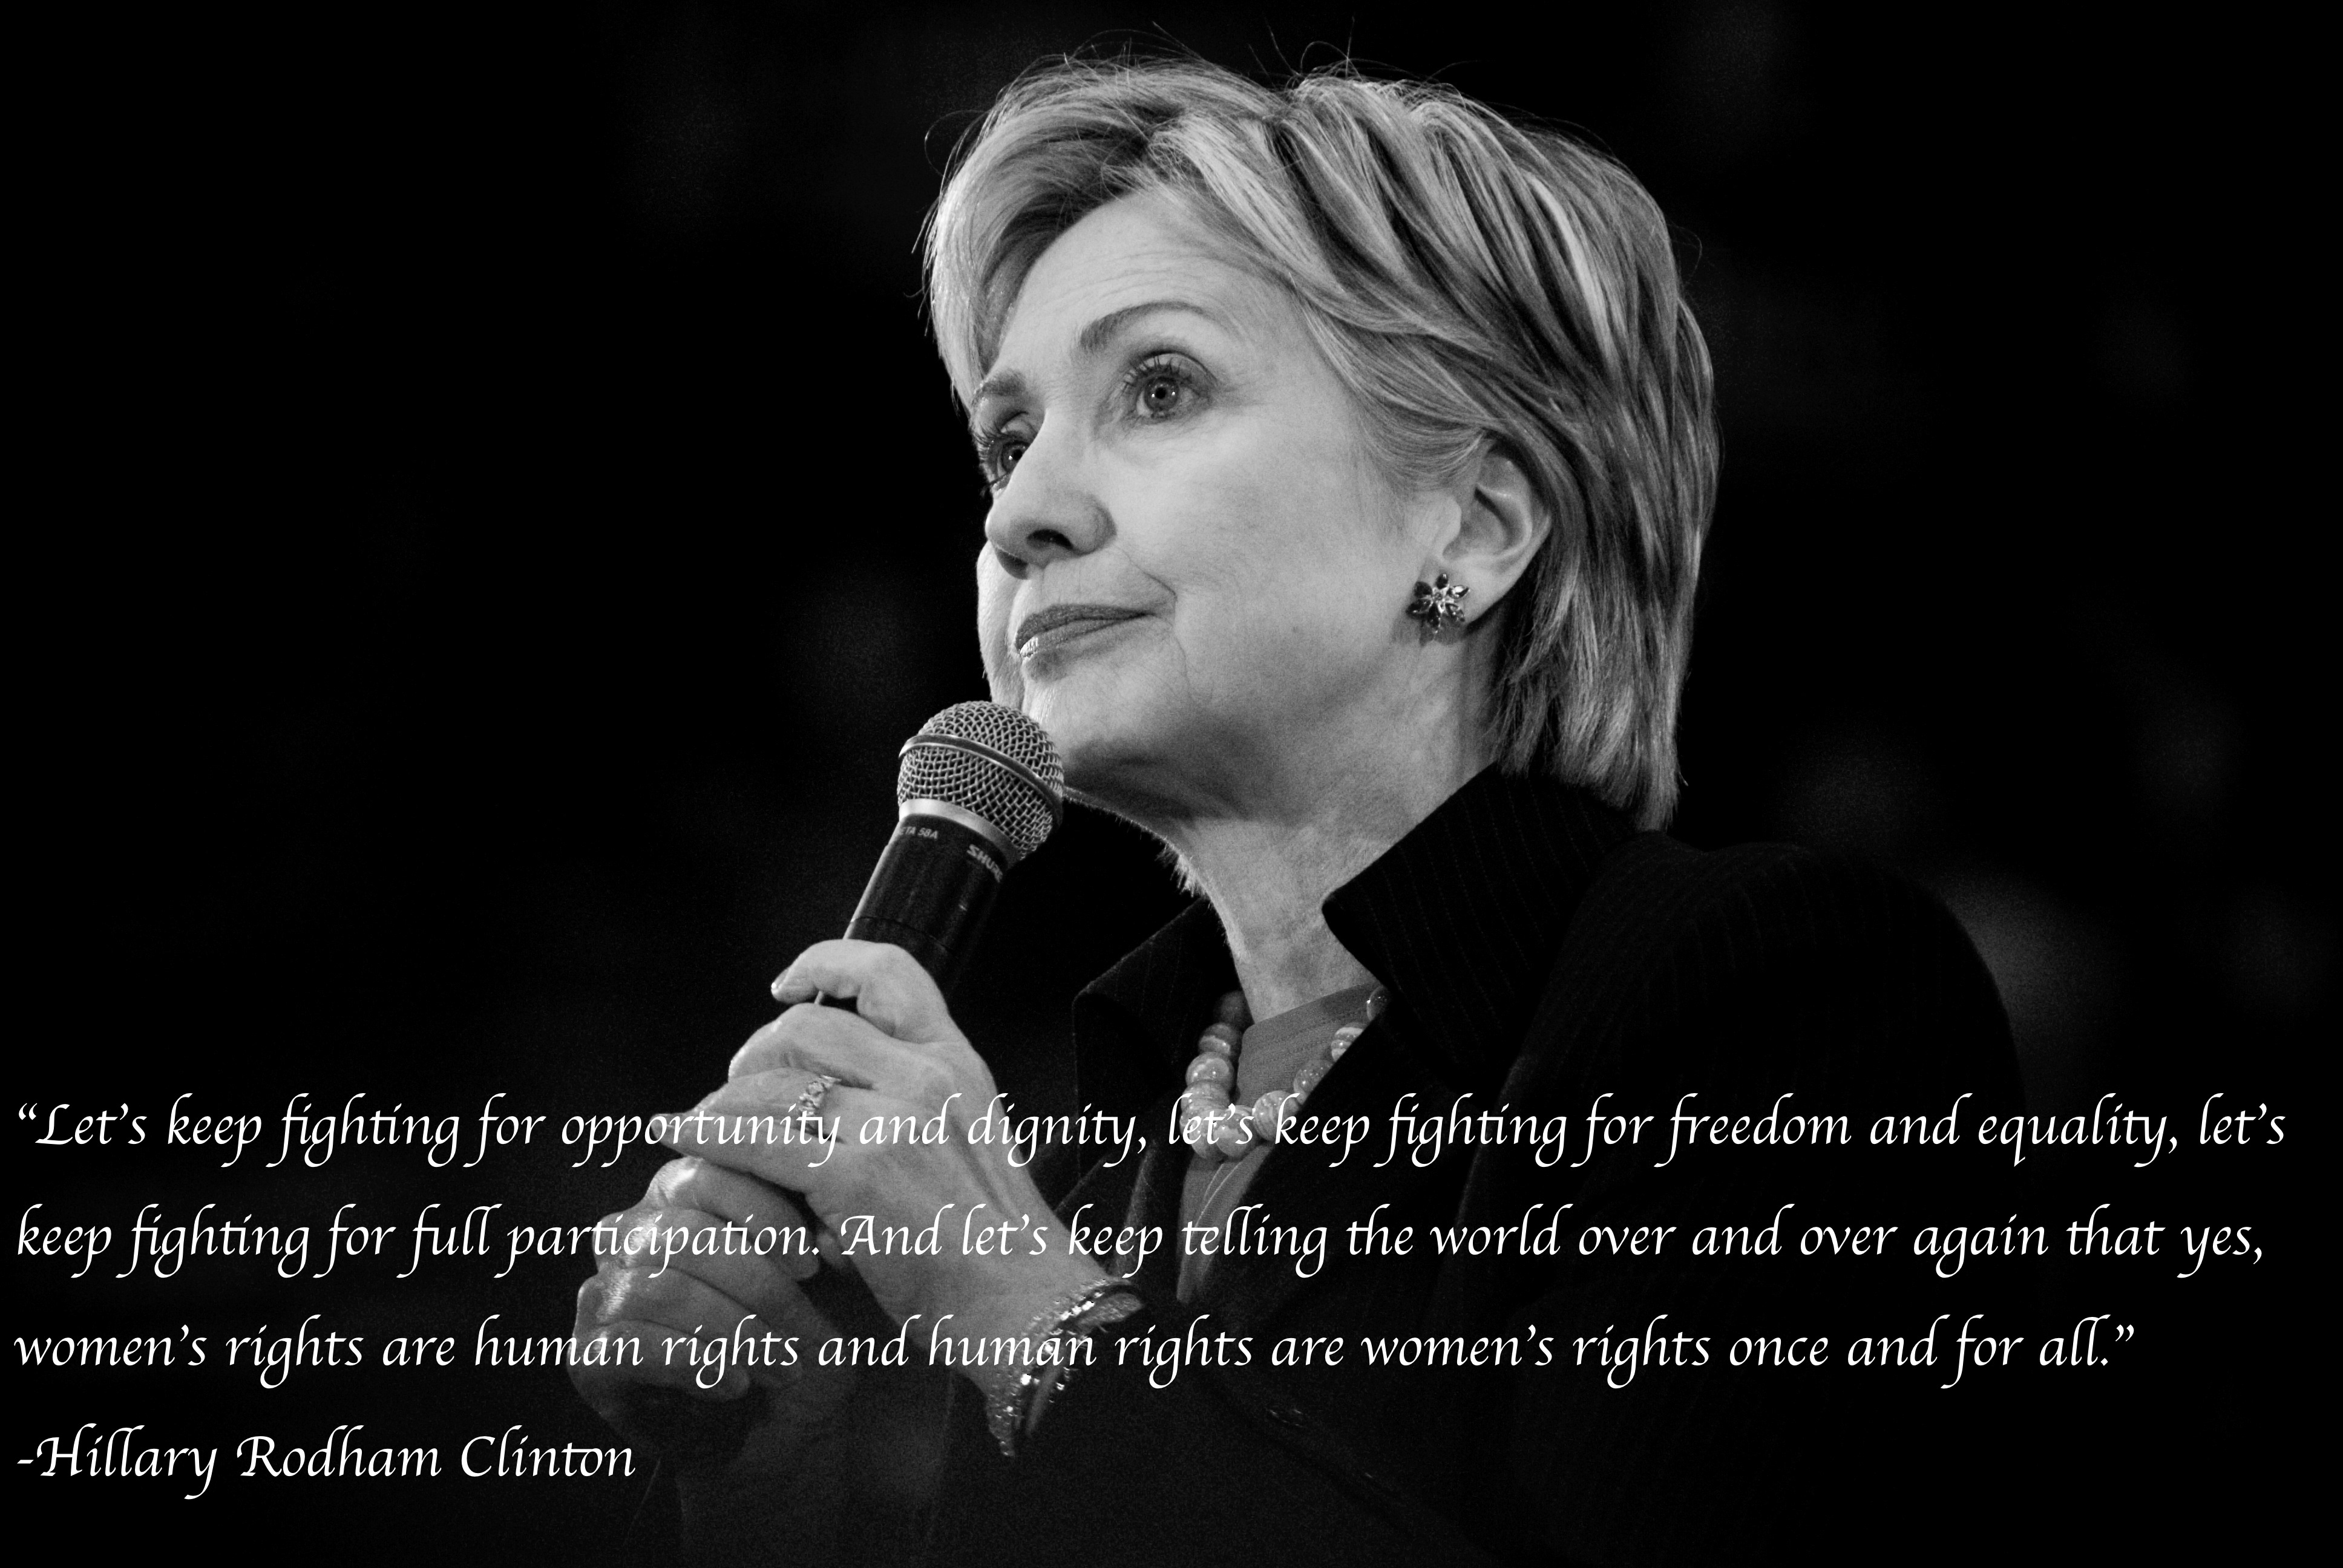 Leaders to an Equal World: Hillary Rodham Clinton